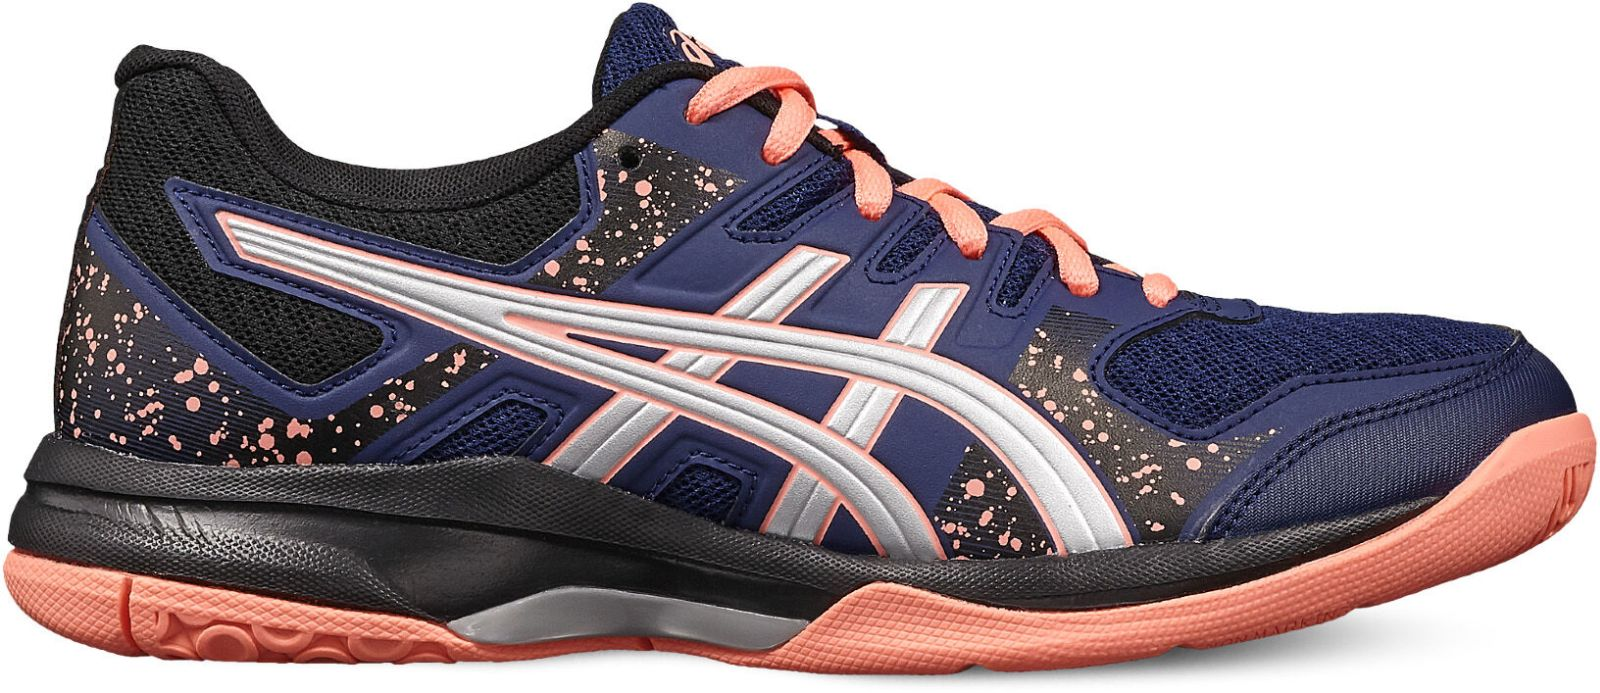 Details about Asics Womens Handball Sports Halls Shoe Gel Flare 7 W Blue  Silver- show original title